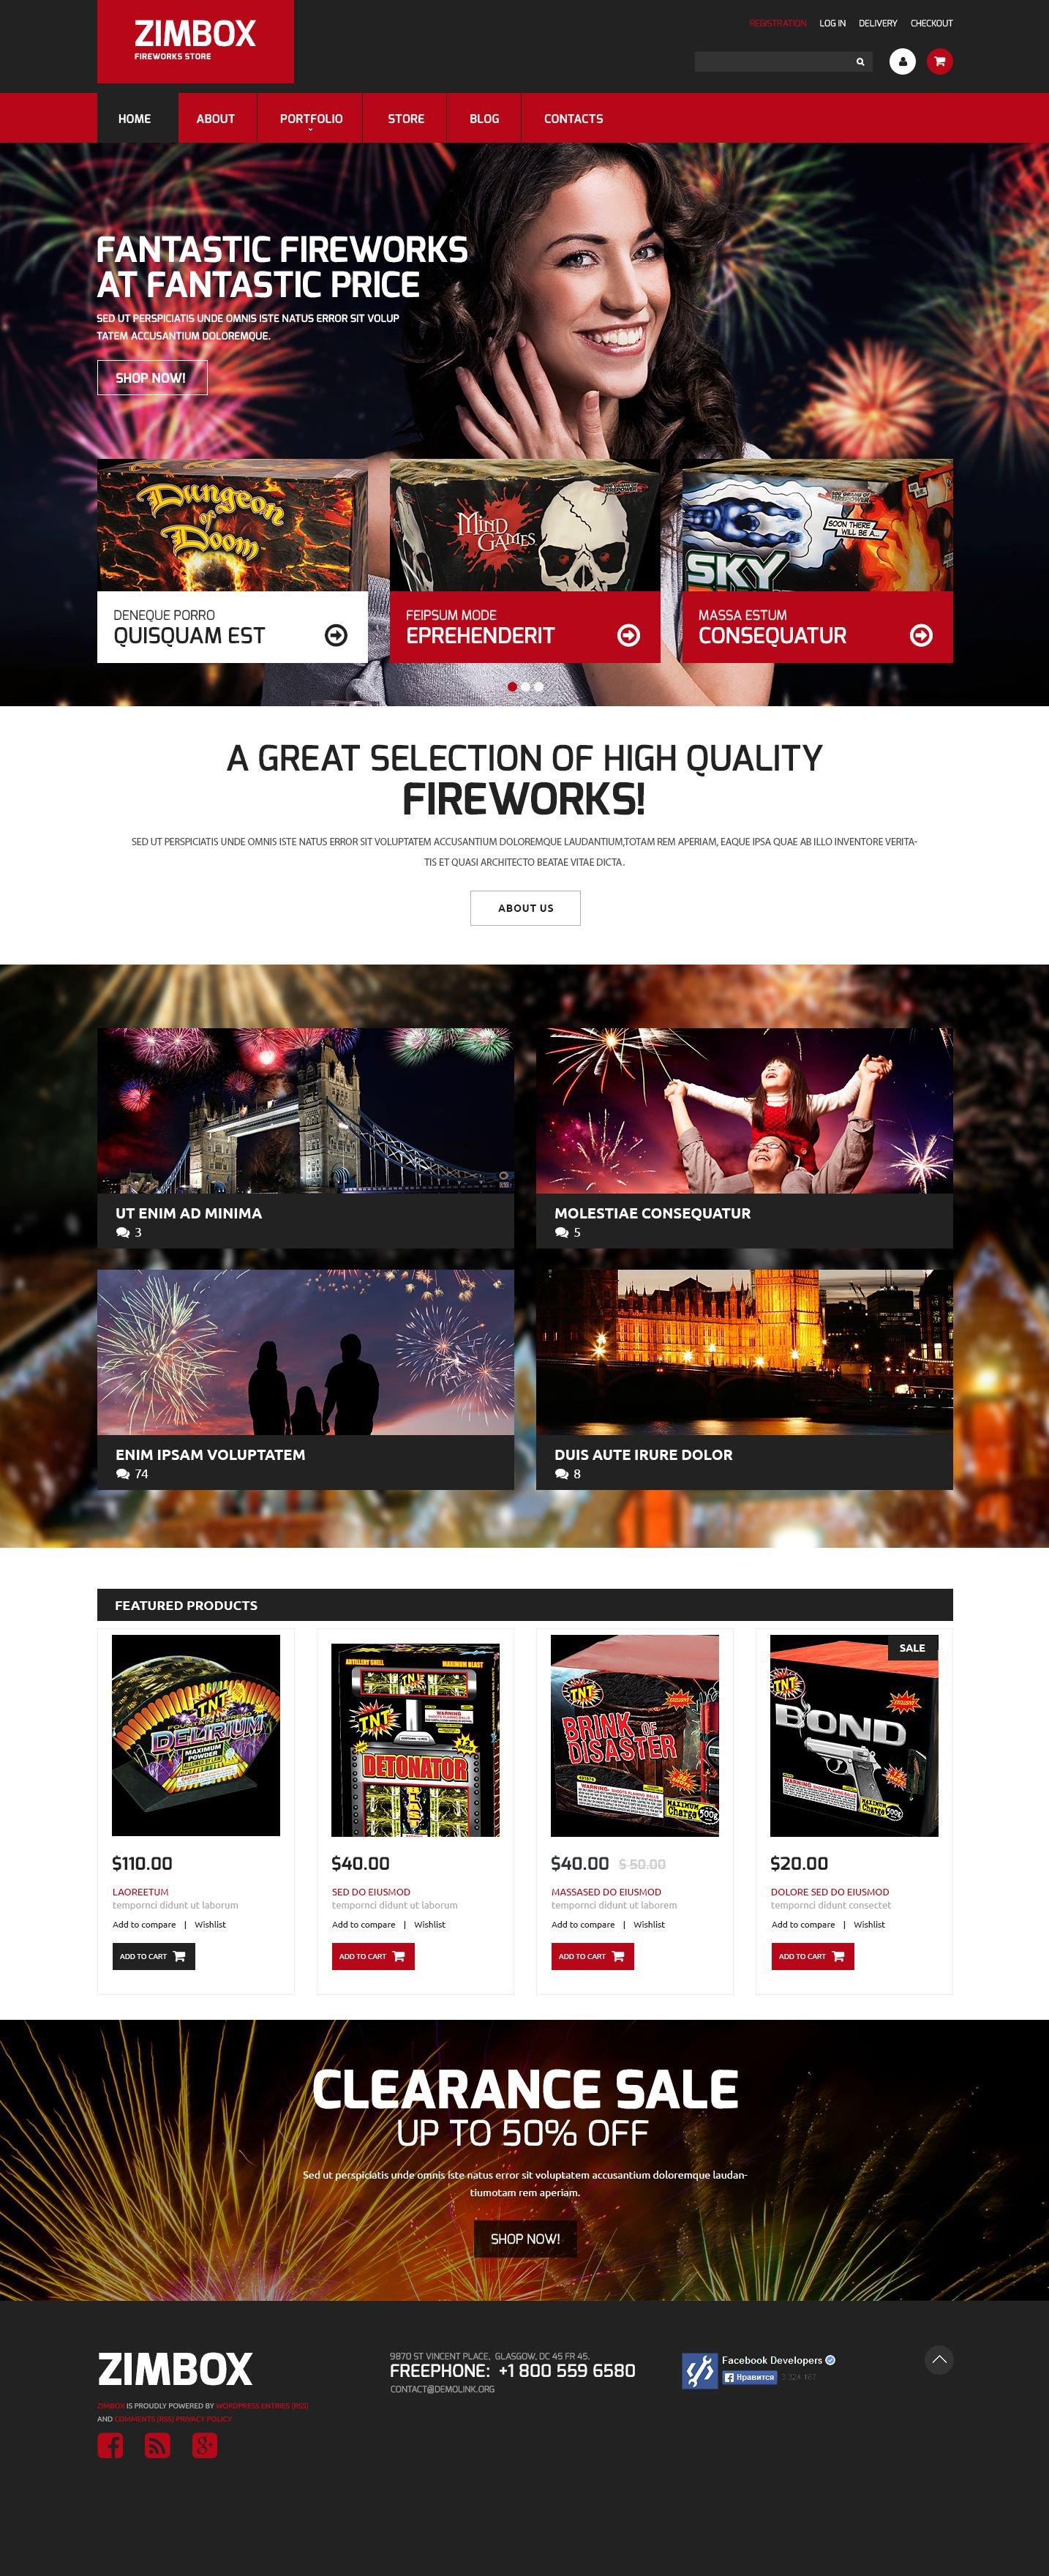 The Zimbox Fire WooCommerce Design 53331, one of the best WooCommerce themes of its kind (entertainment, most popular), also known as zimbox fire WooCommerce template, works store WooCommerce template, prices WooCommerce template, specials WooCommerce template, entertainment WooCommerce template, party and related with zimbox fire, works store, prices, specials, entertainment, party, etc.